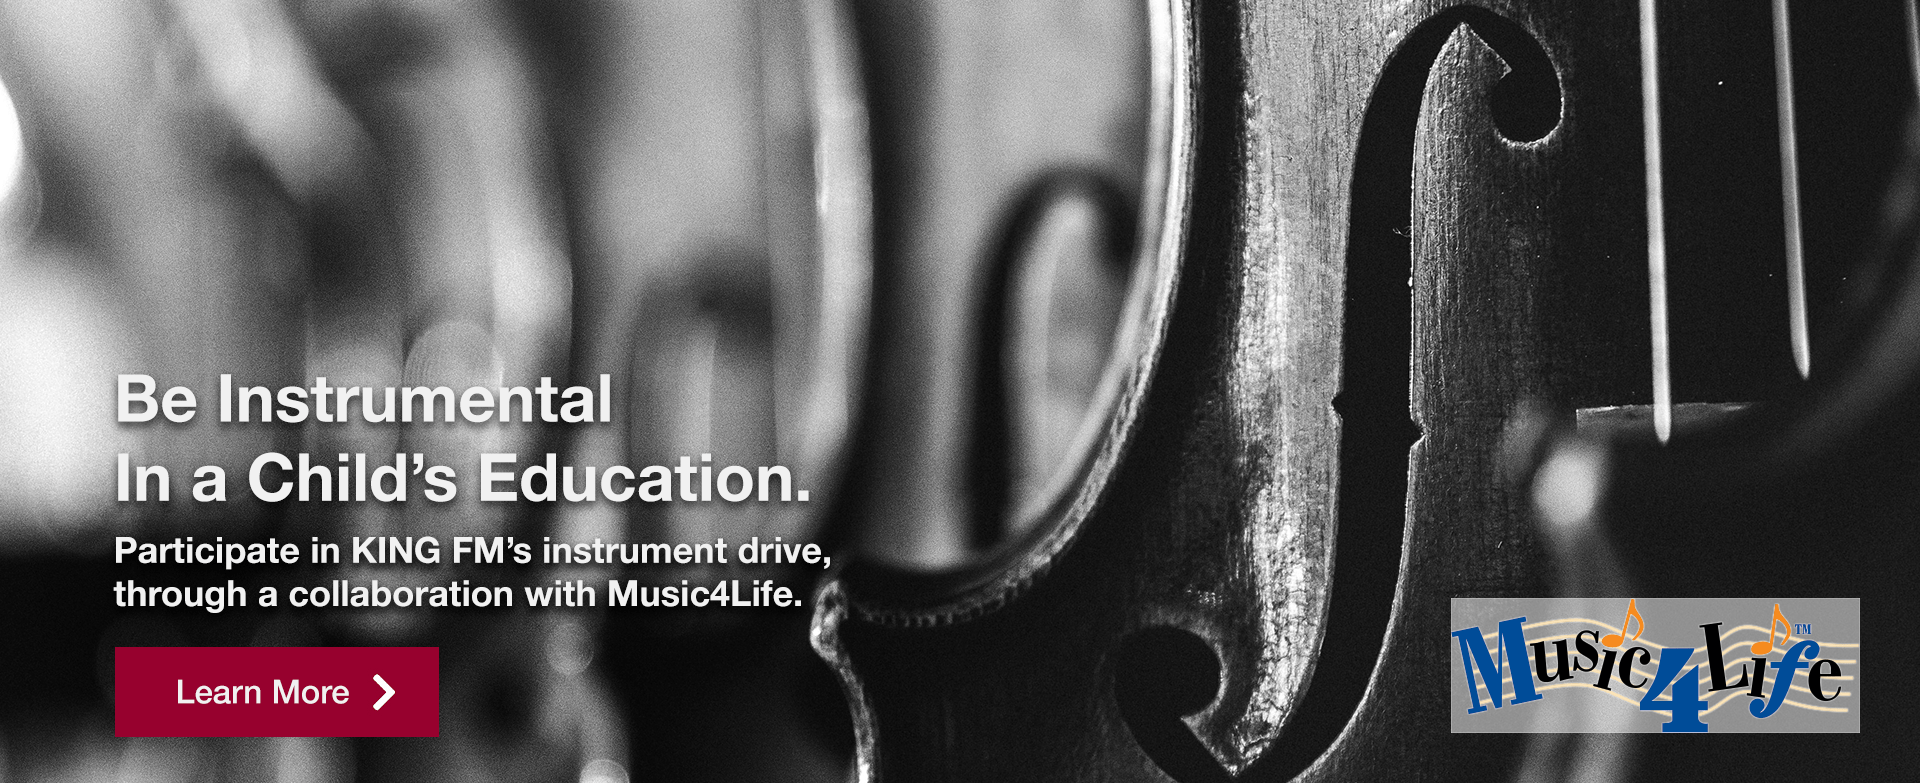 [image of violins] Be Instrumental in a Child's Education   Participate in KING FM's instrument drive, through a collaboration with Music4Life.